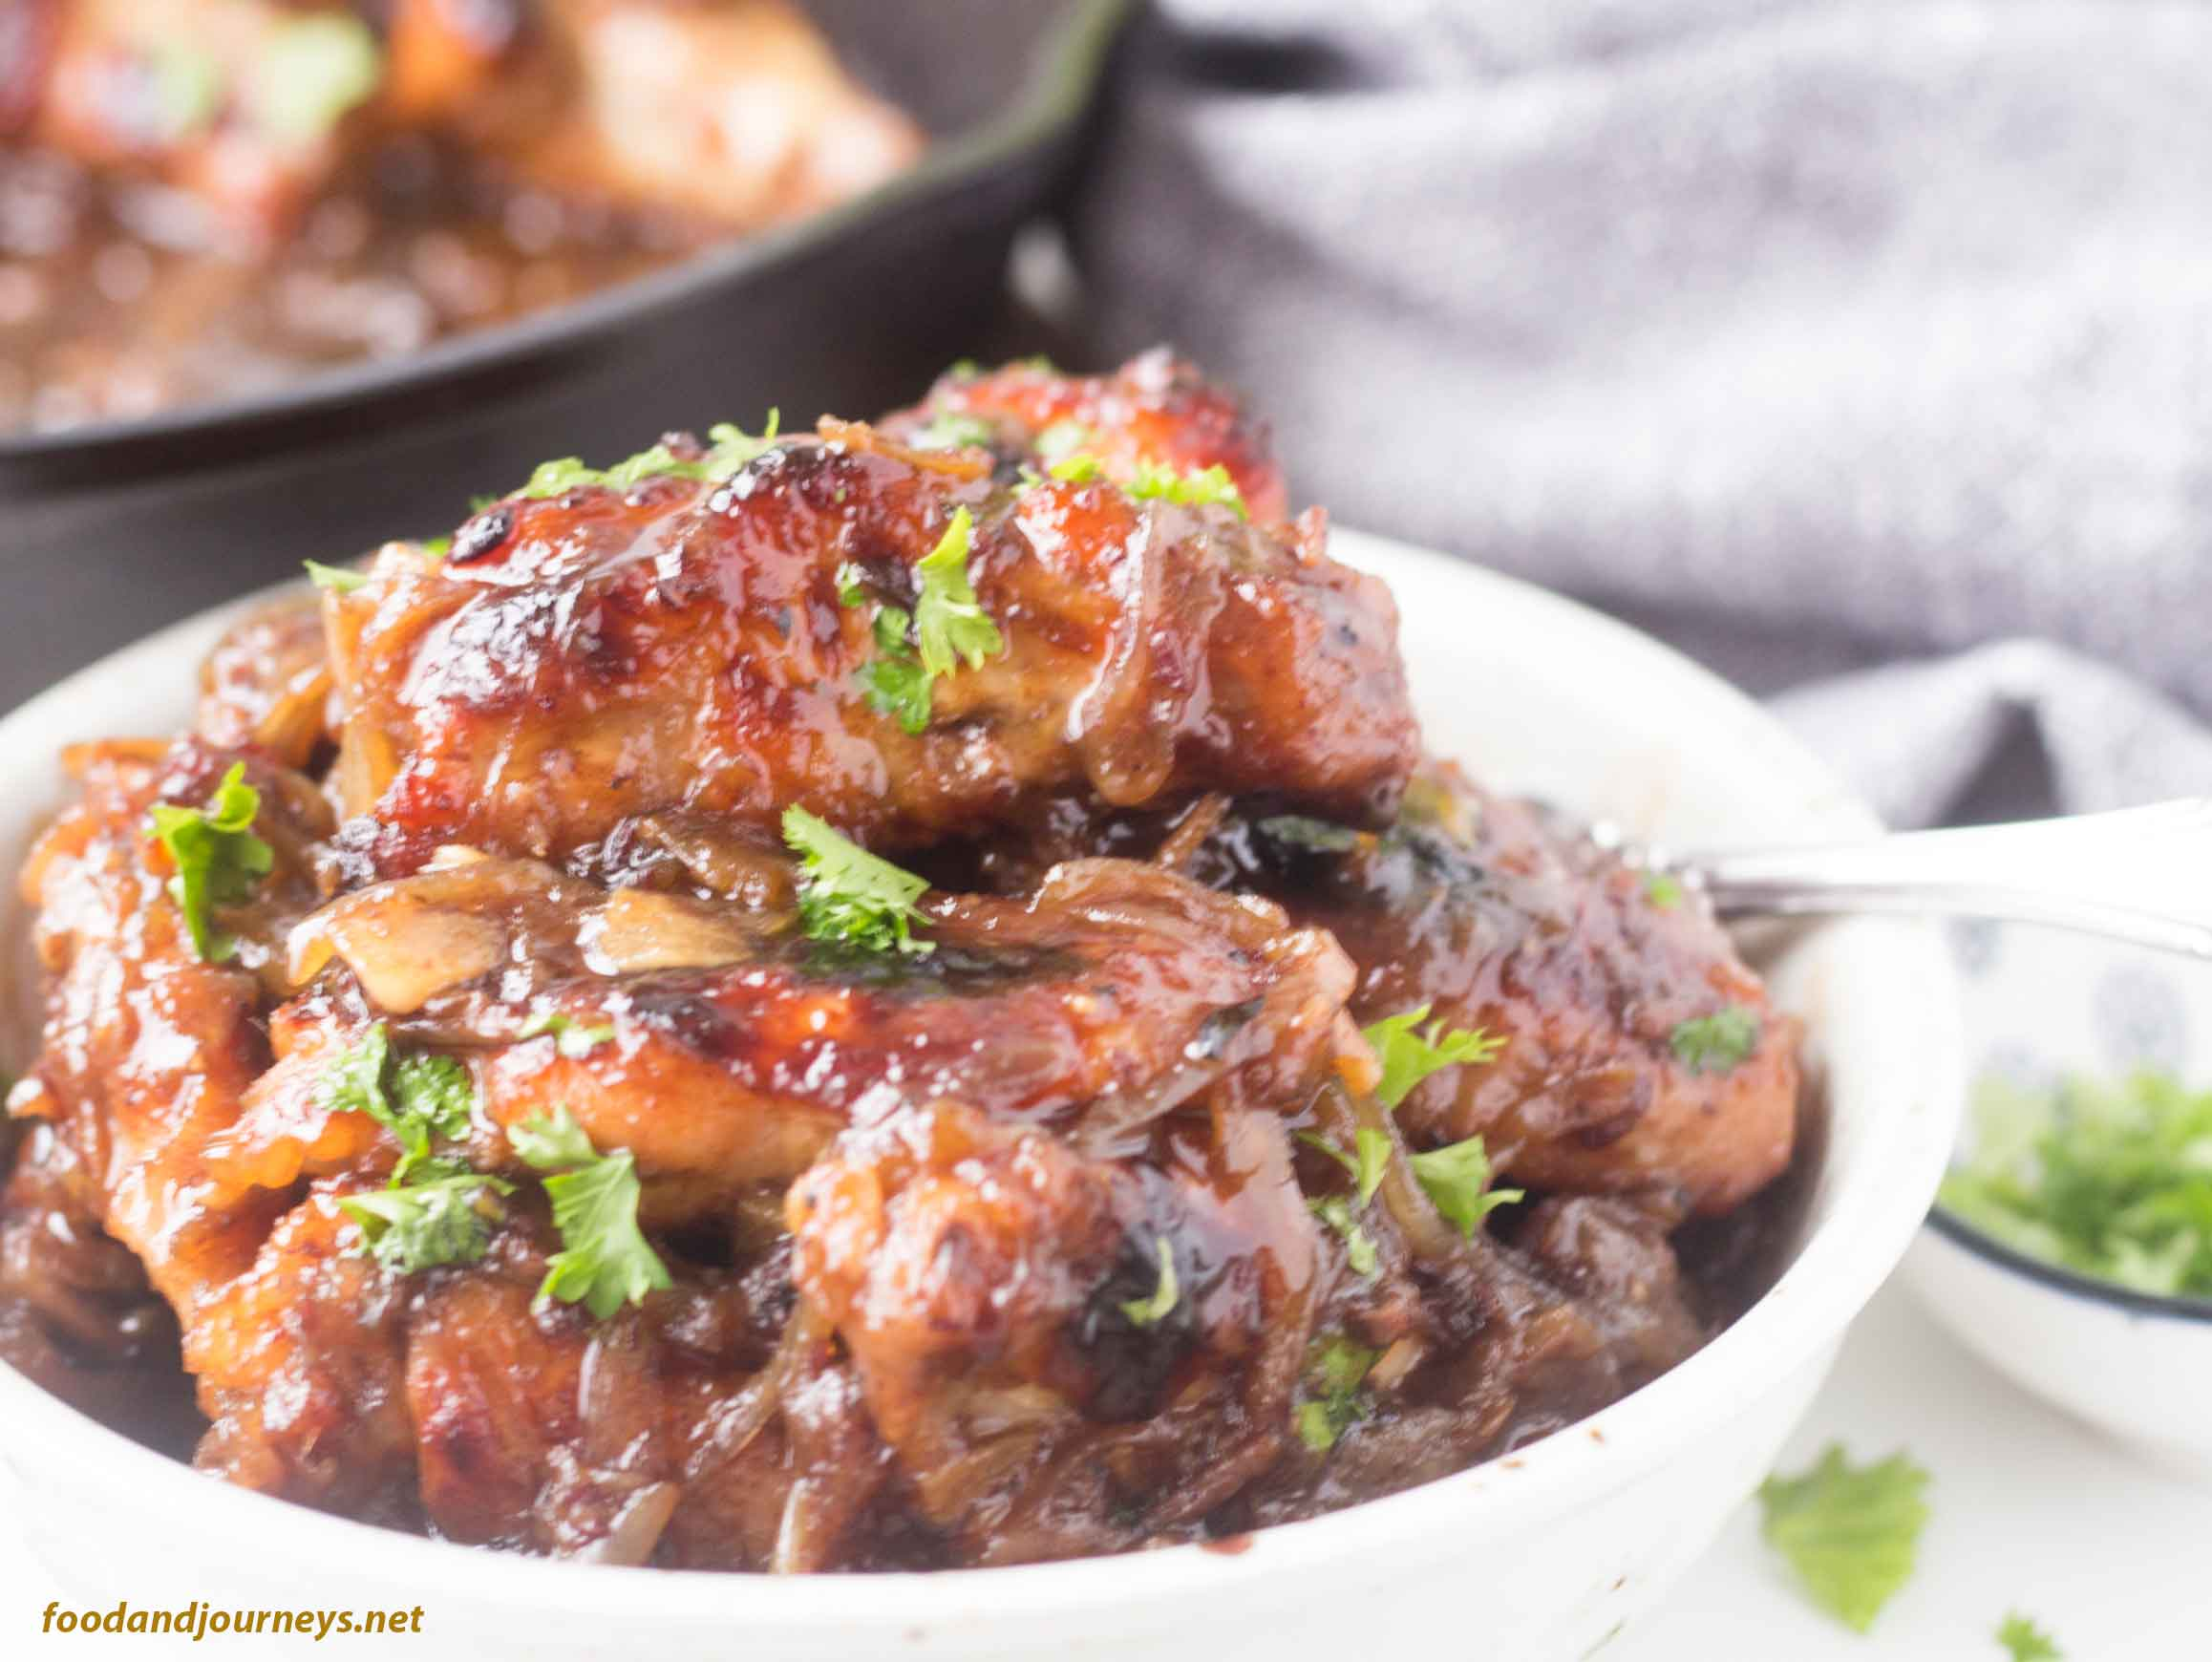 Image of Spanish Sweet & Sticky Wings on a plate, ready for serving.